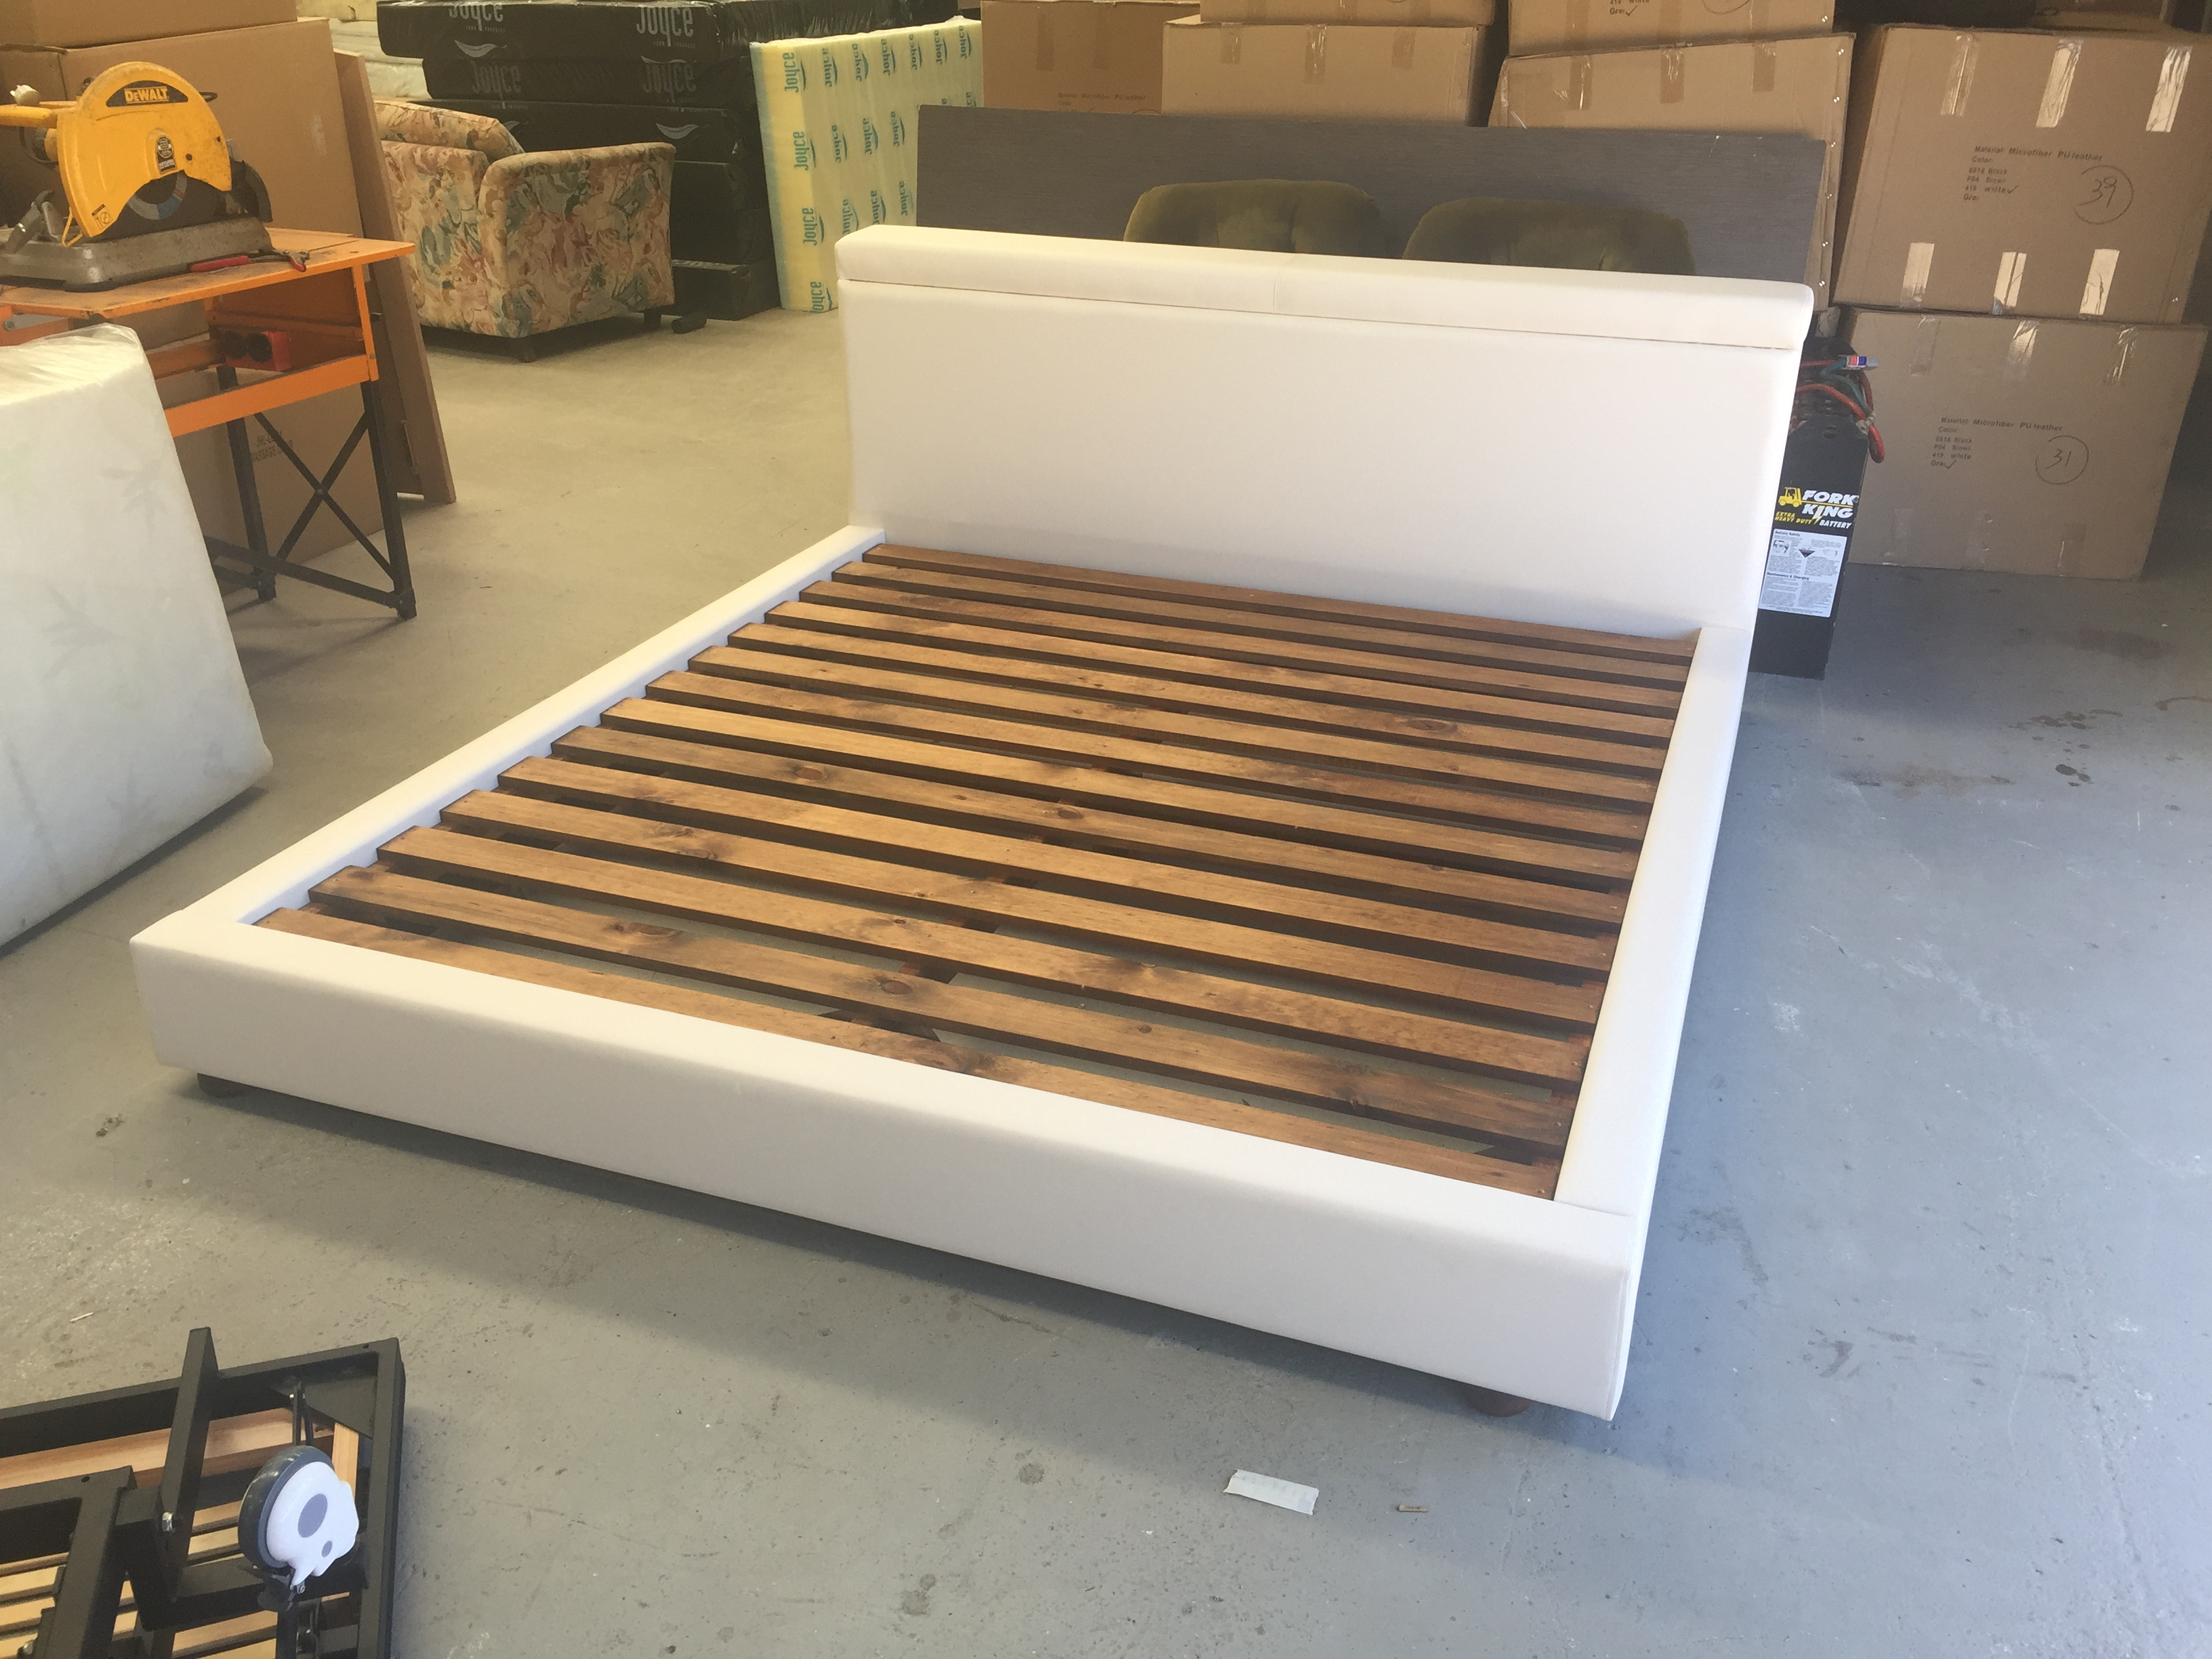 Electric Adjustable Beds Specialist, Adjustable Electric S20-The-Unley The Unley Designs